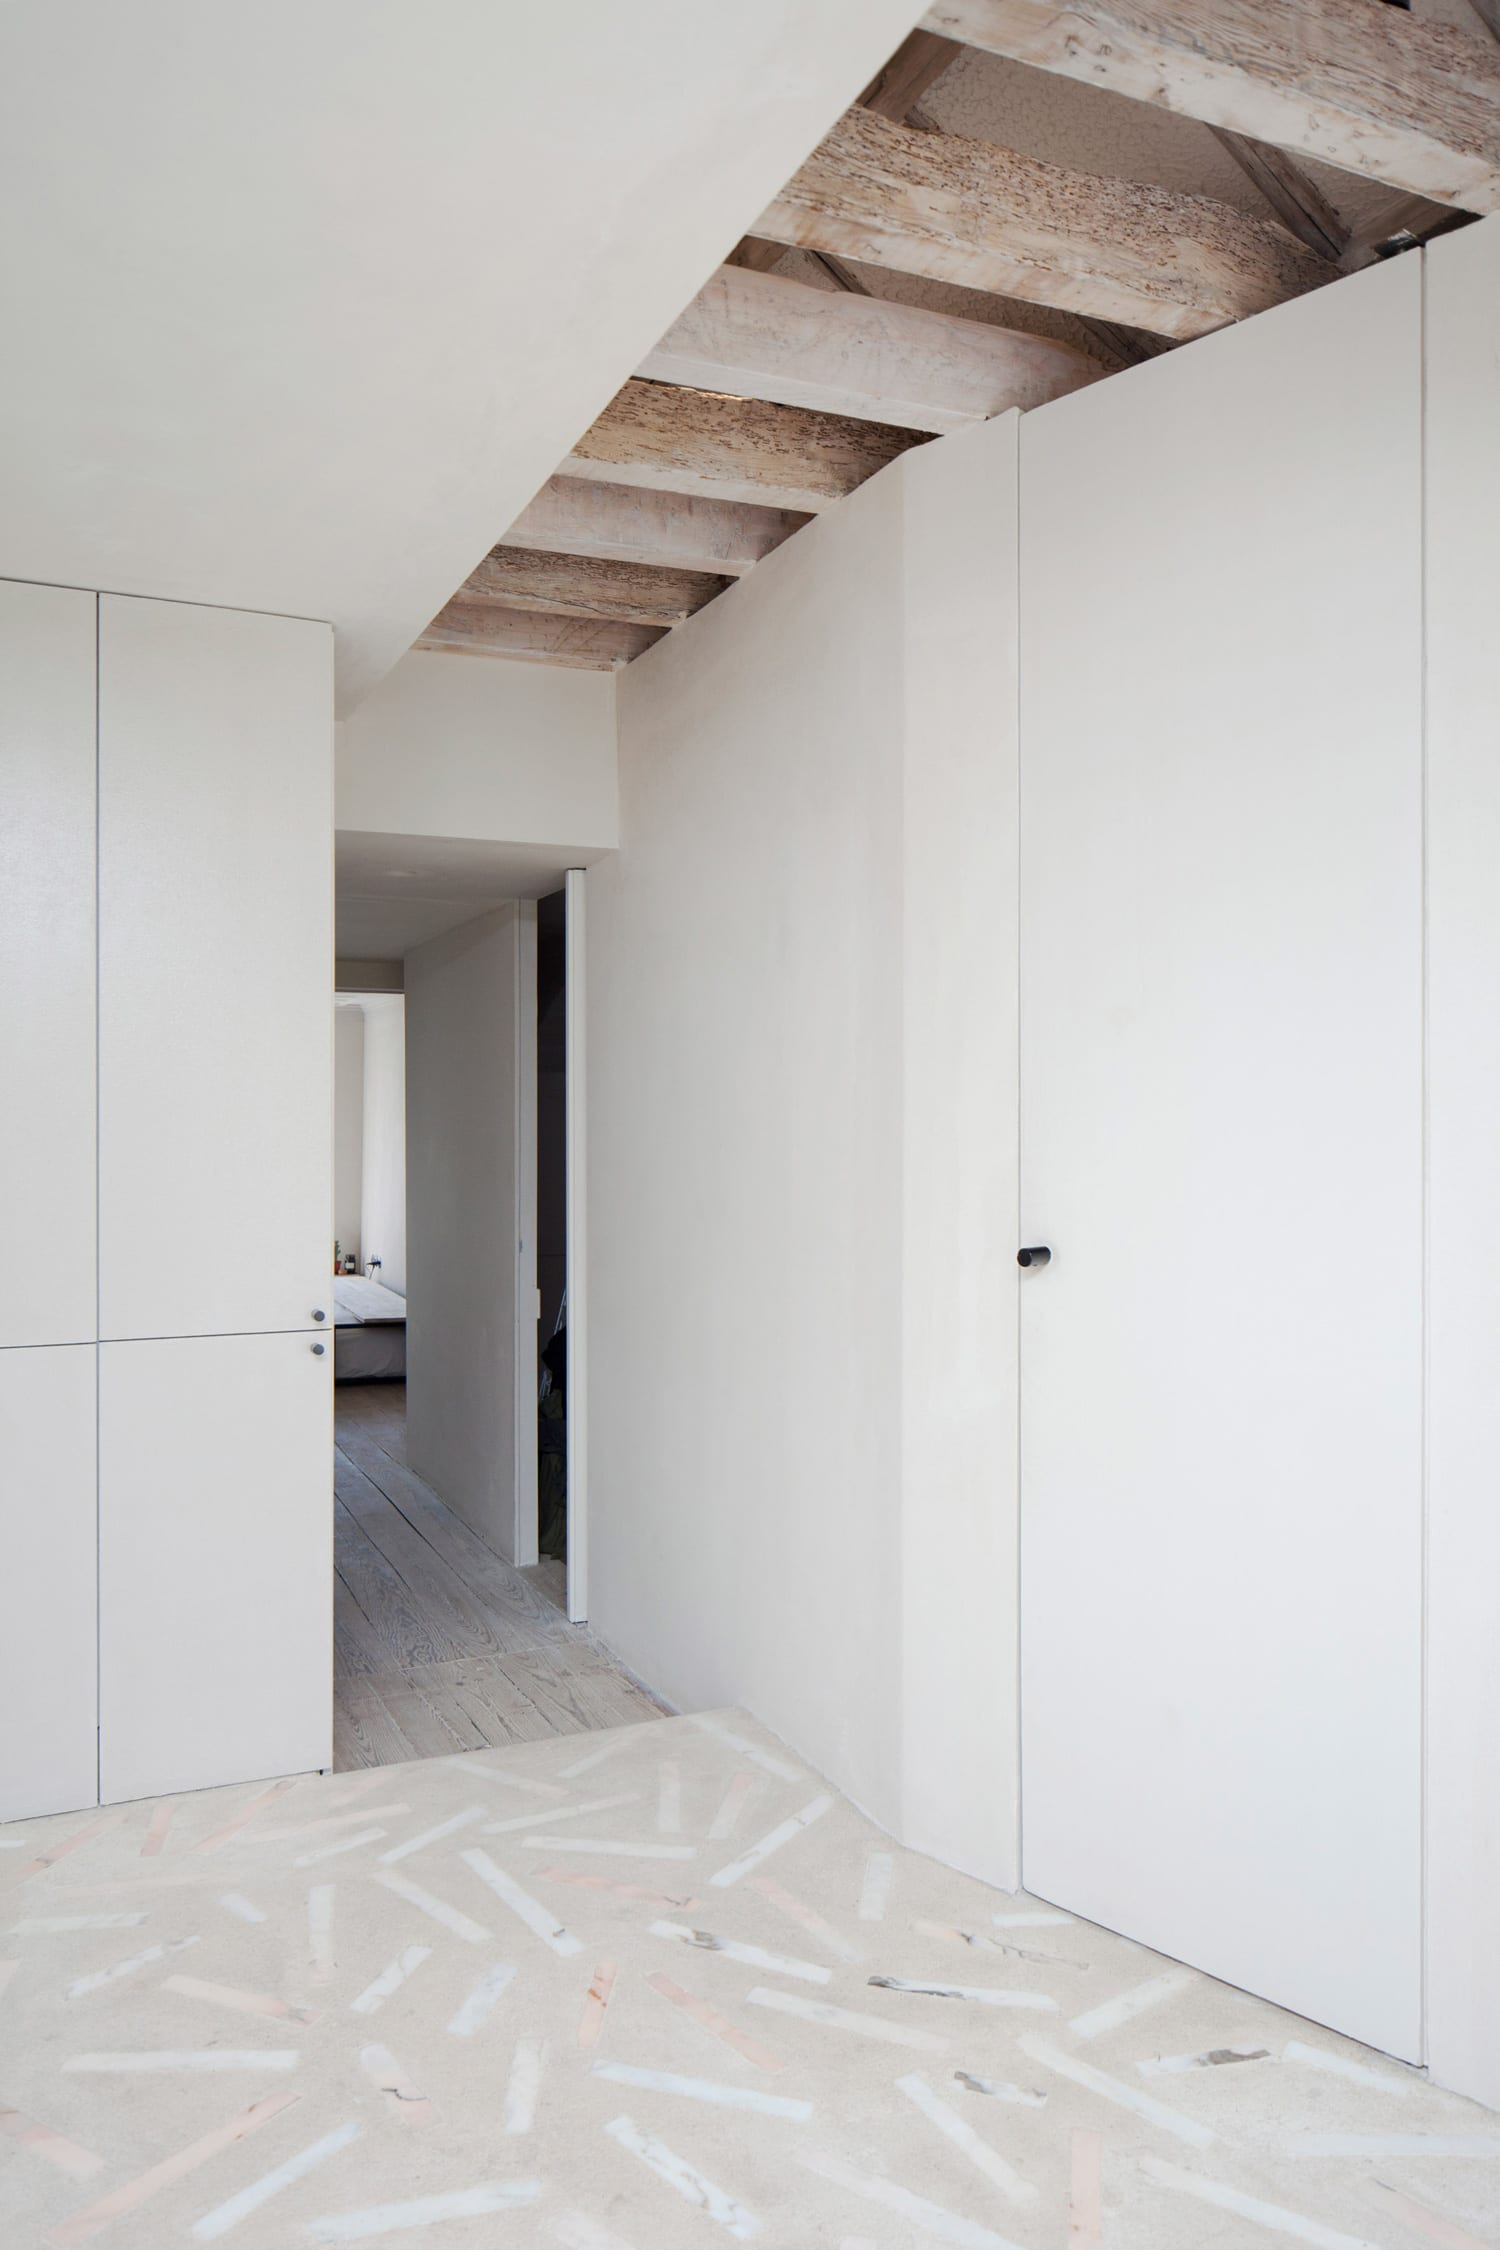 Lapa Apartment by Studio Gameiro Interiors Residential in Portugal, Lisbon | Yellowtrace